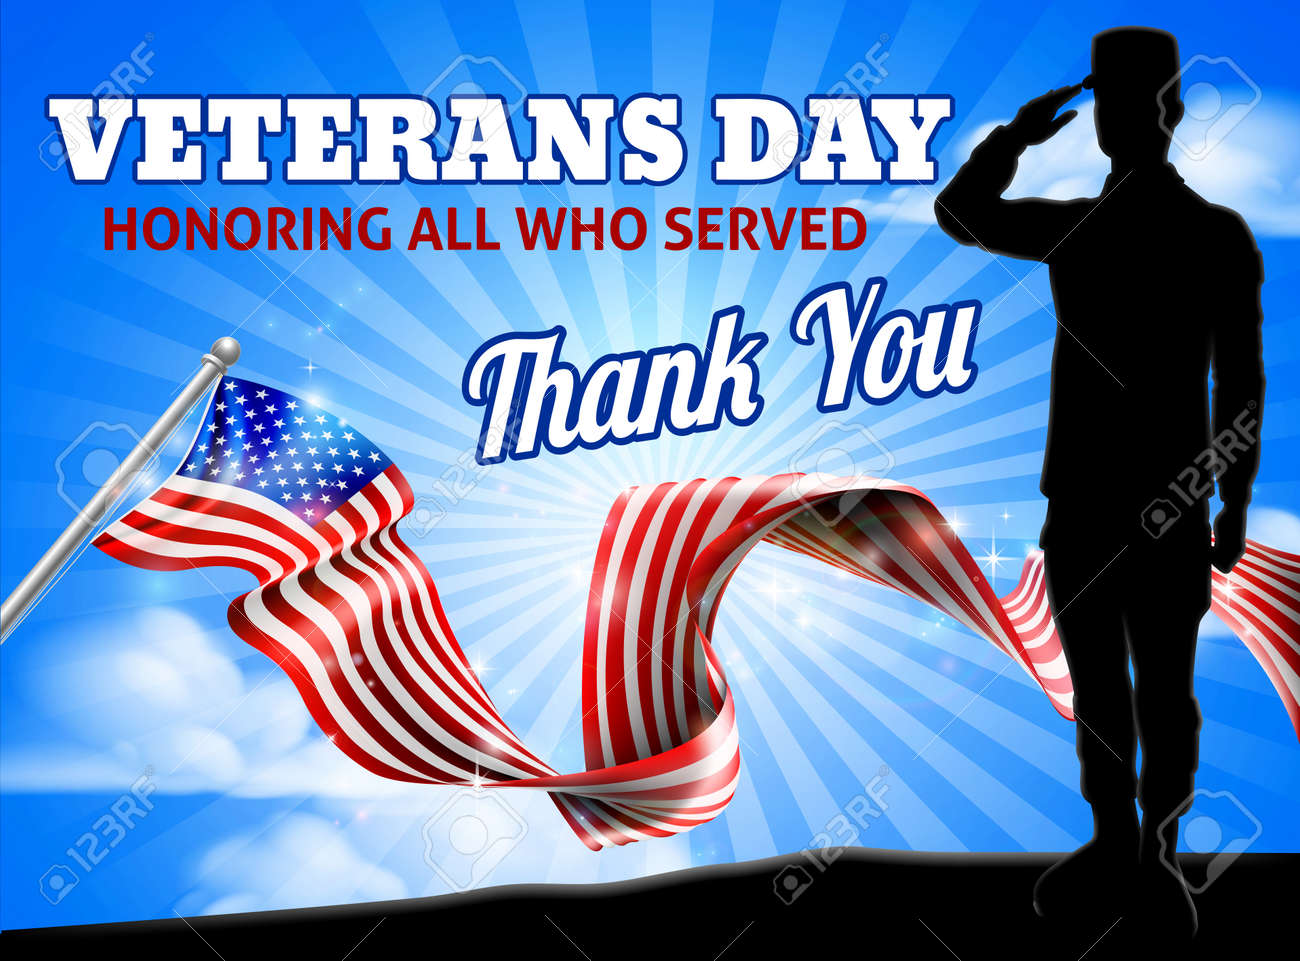 American Flag Veterans Day Soldier Saluting - 111310759